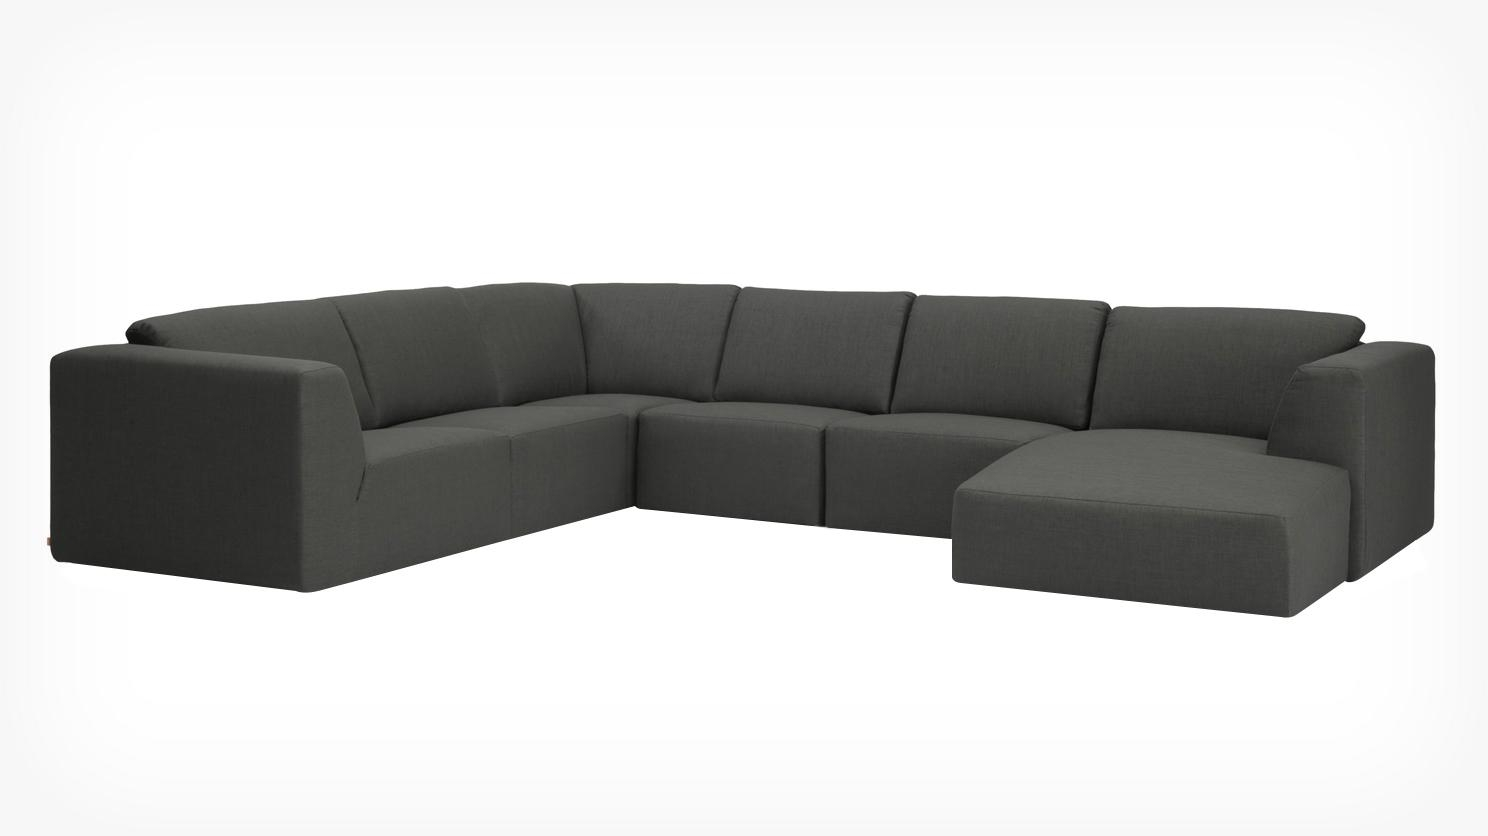 Eq3 | Morten 6 Piece Sectional Sofa With Chaise – Fabric Intended For 6 Piece Sectional Sofas Couches (Image 11 of 20)